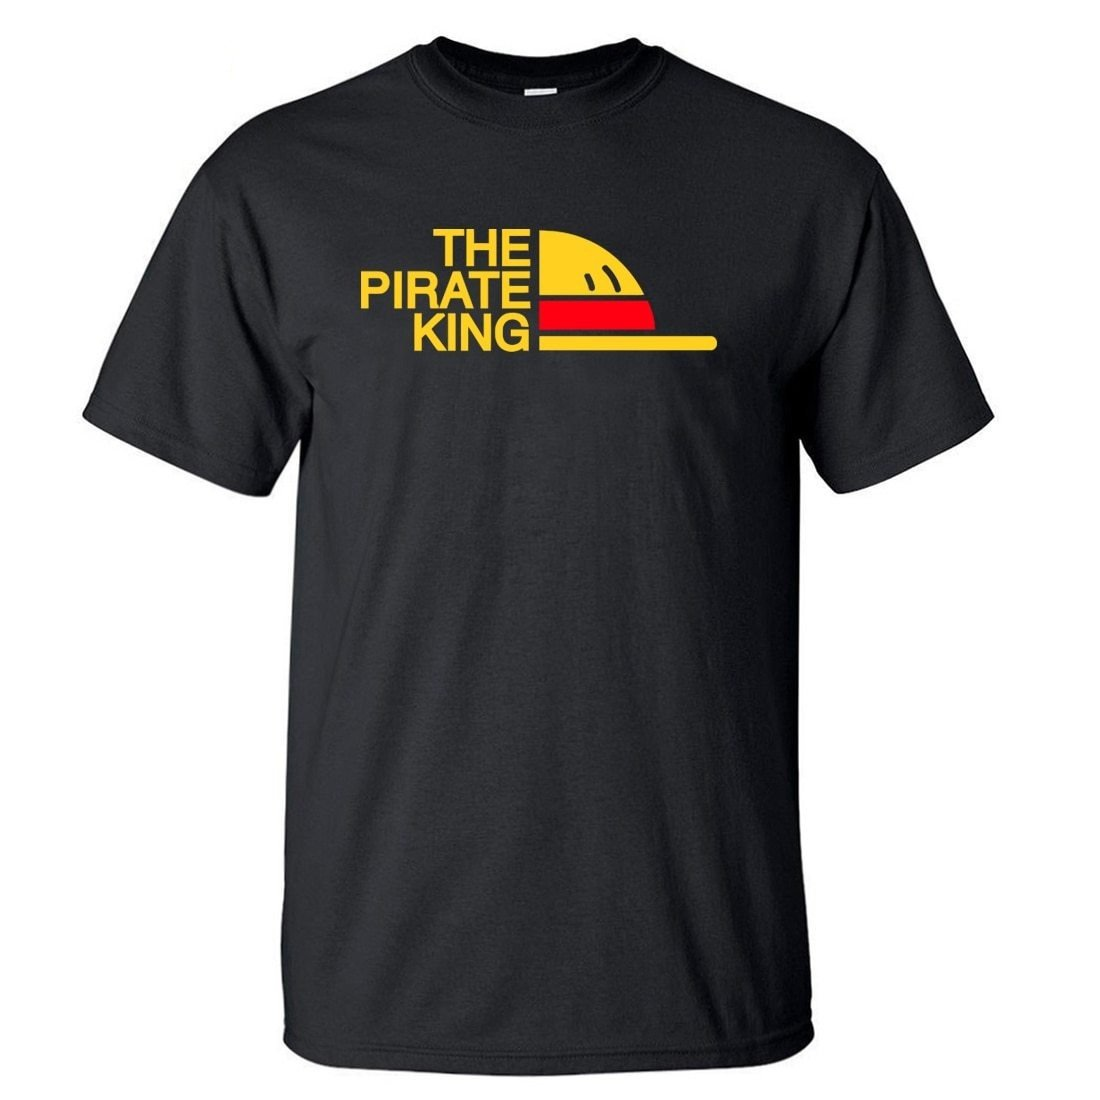 One Piece The Pirate King T-Shirt ANM0608 Burgundy / S Official One Piece Merch